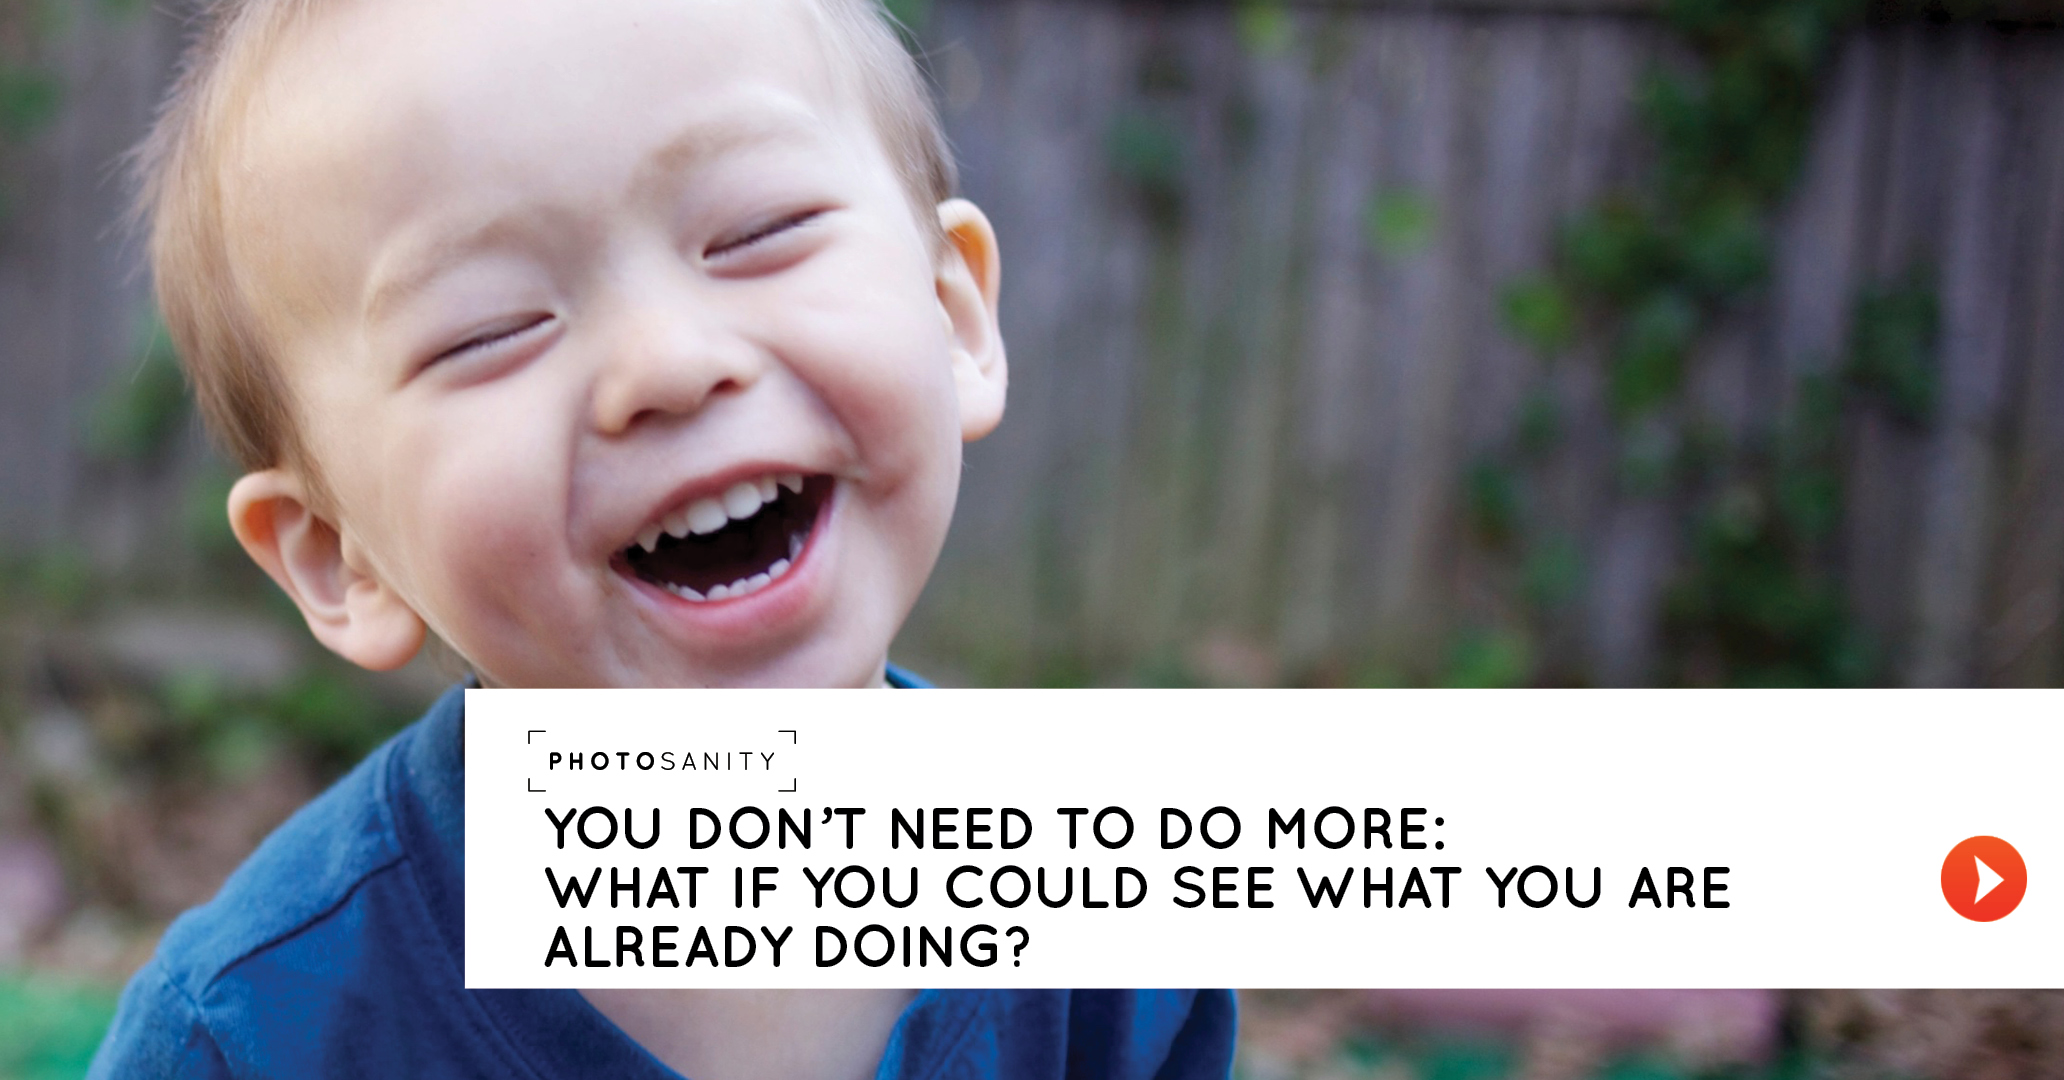 You don't need to do more: what if you could see what you are already doing? (part 4 of 4)